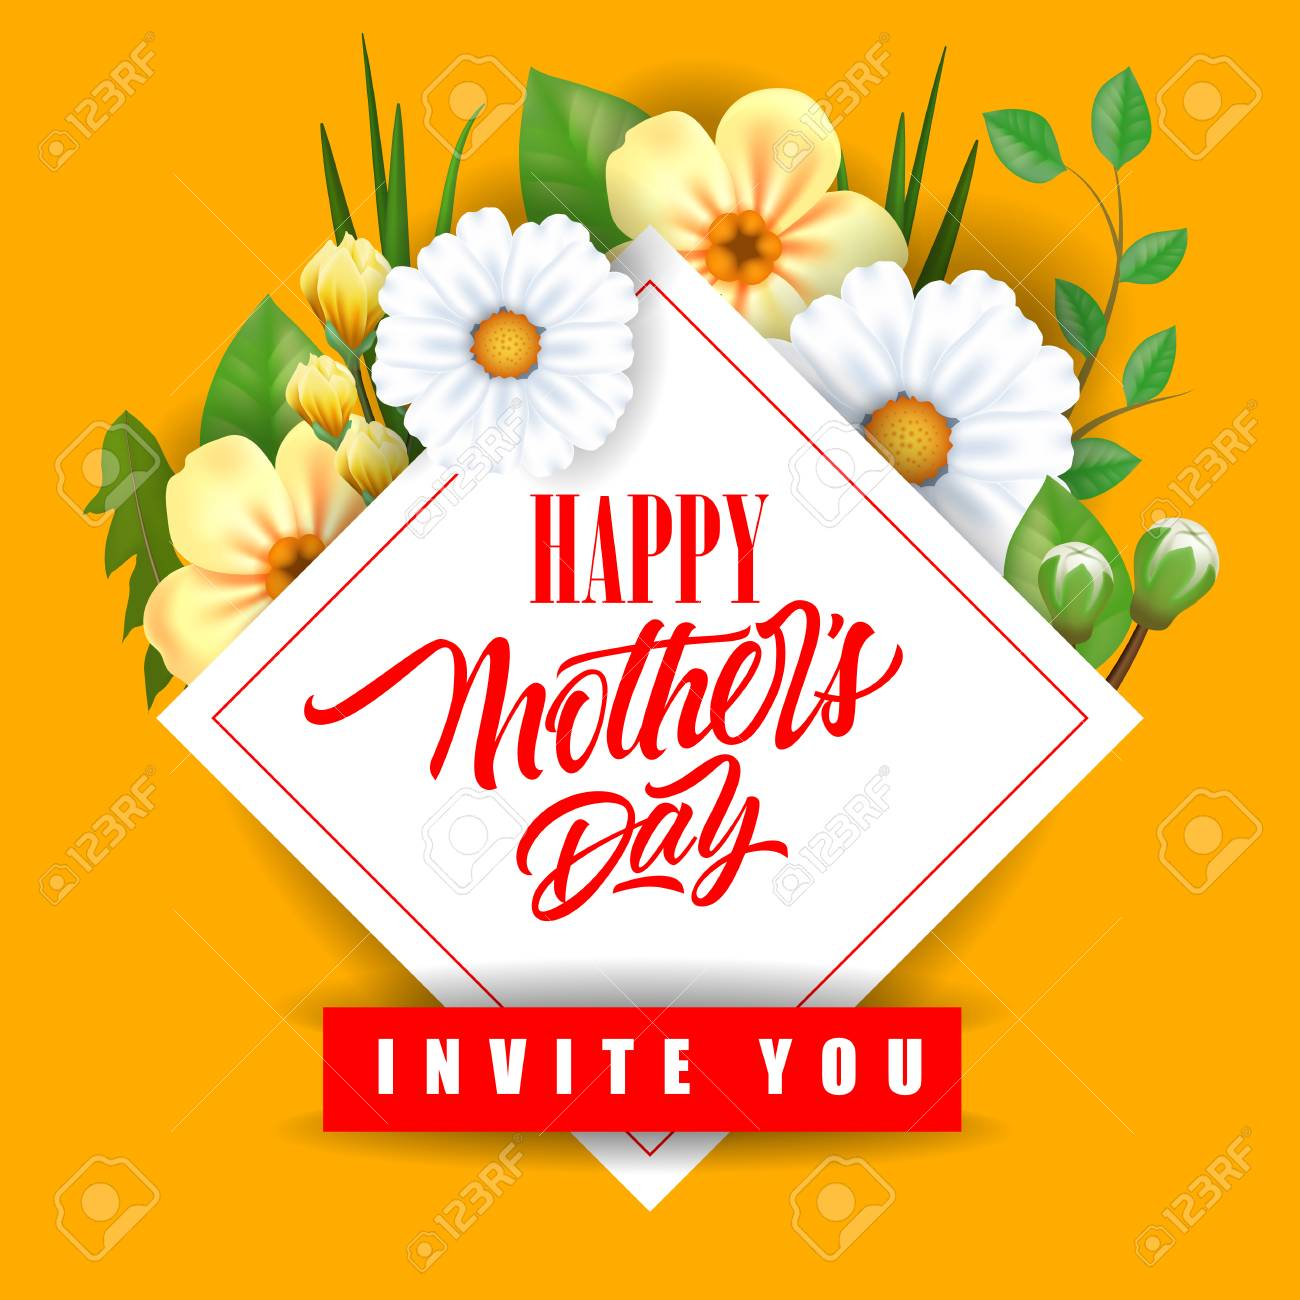 happy mother day invite you lettering with flowers mothers day